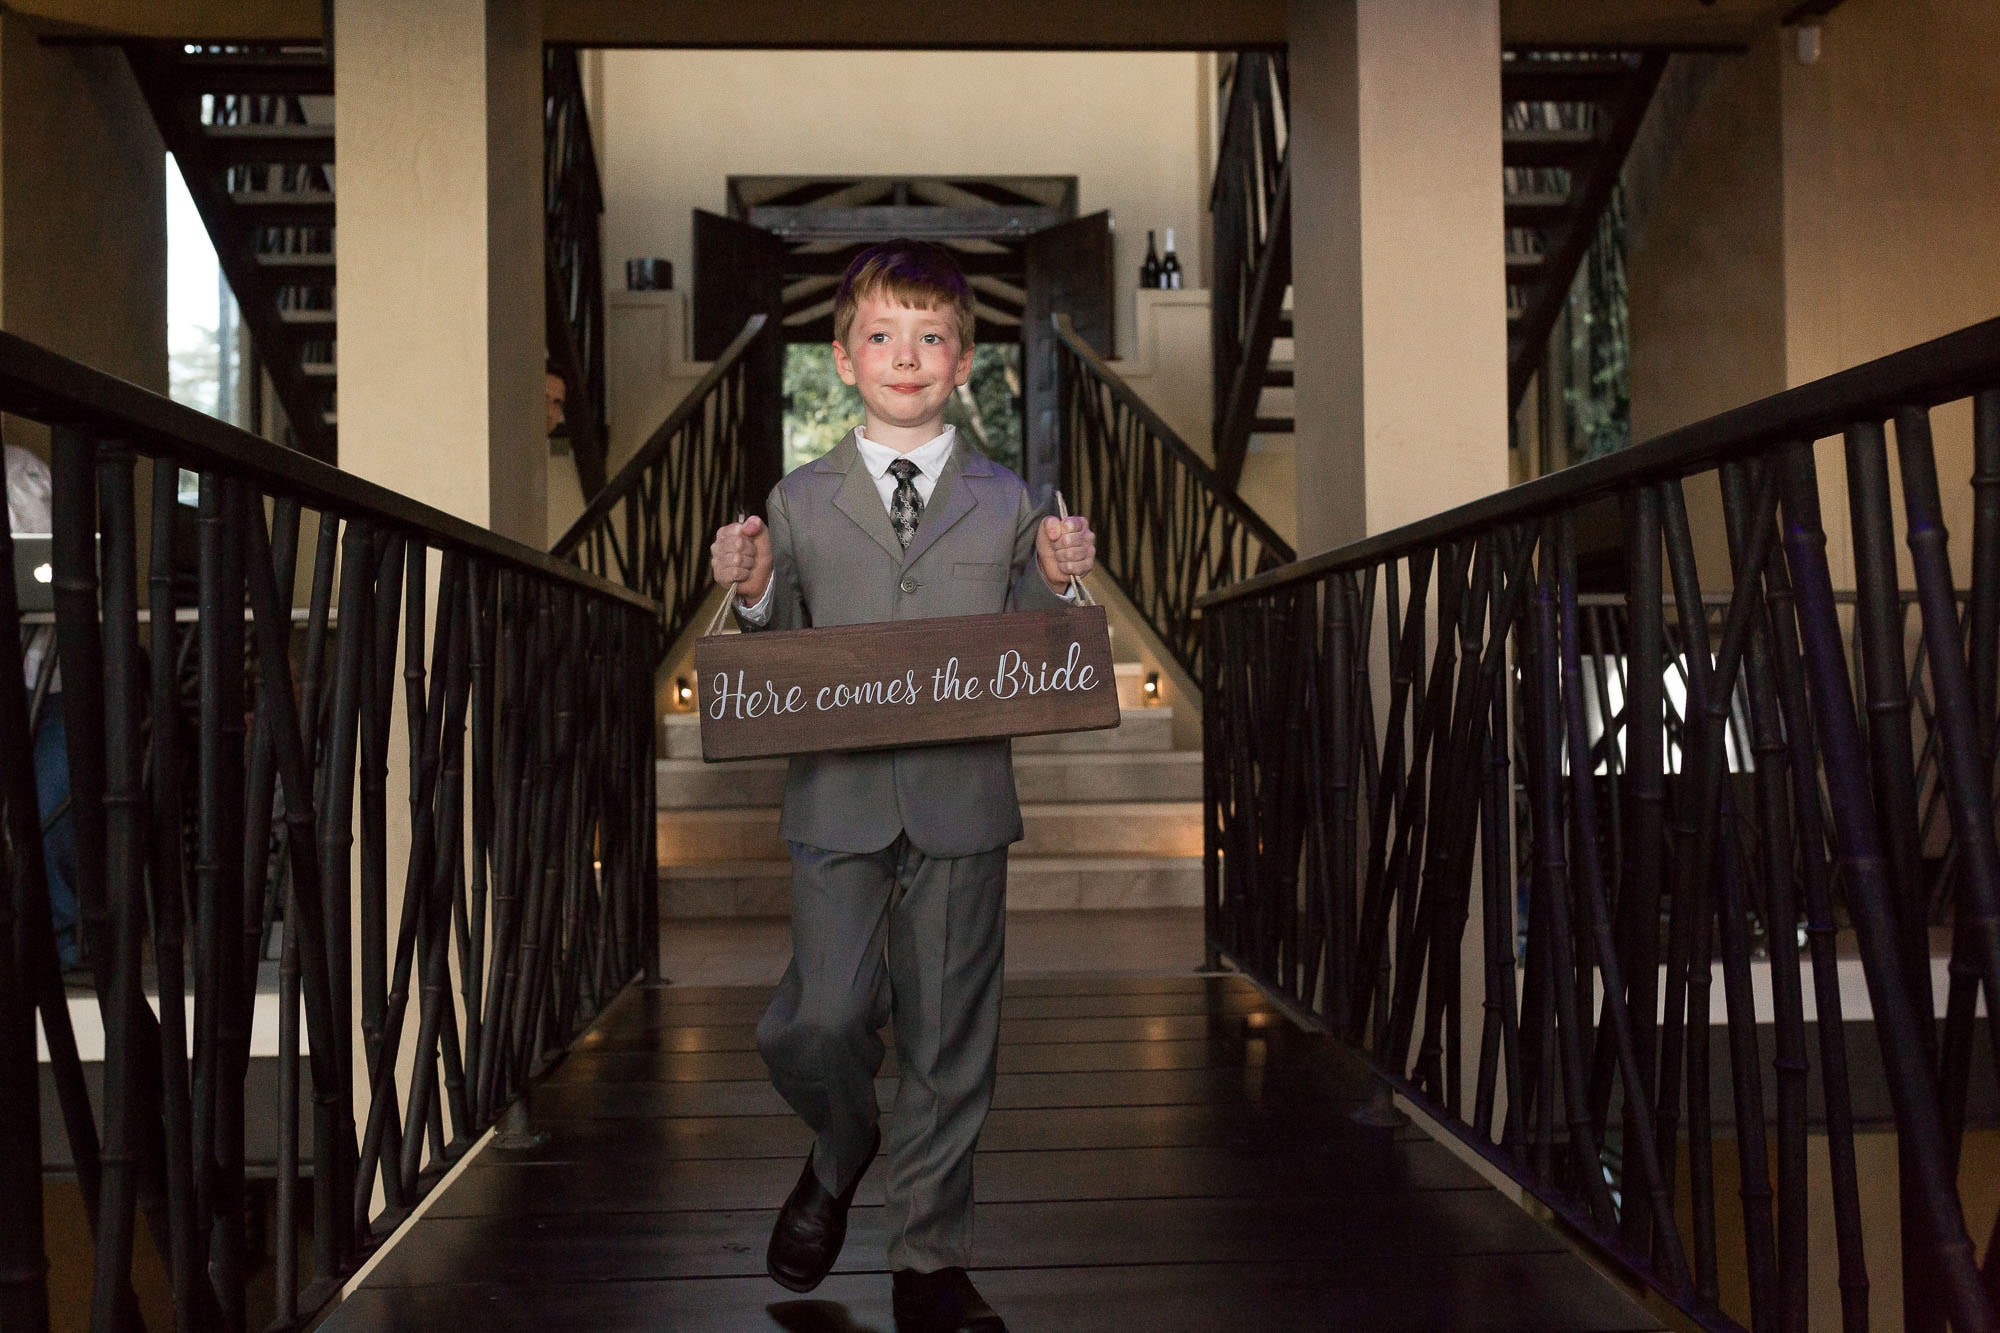 The ring bearer perfectly placed in a intricate staircase in Vista Hermosa